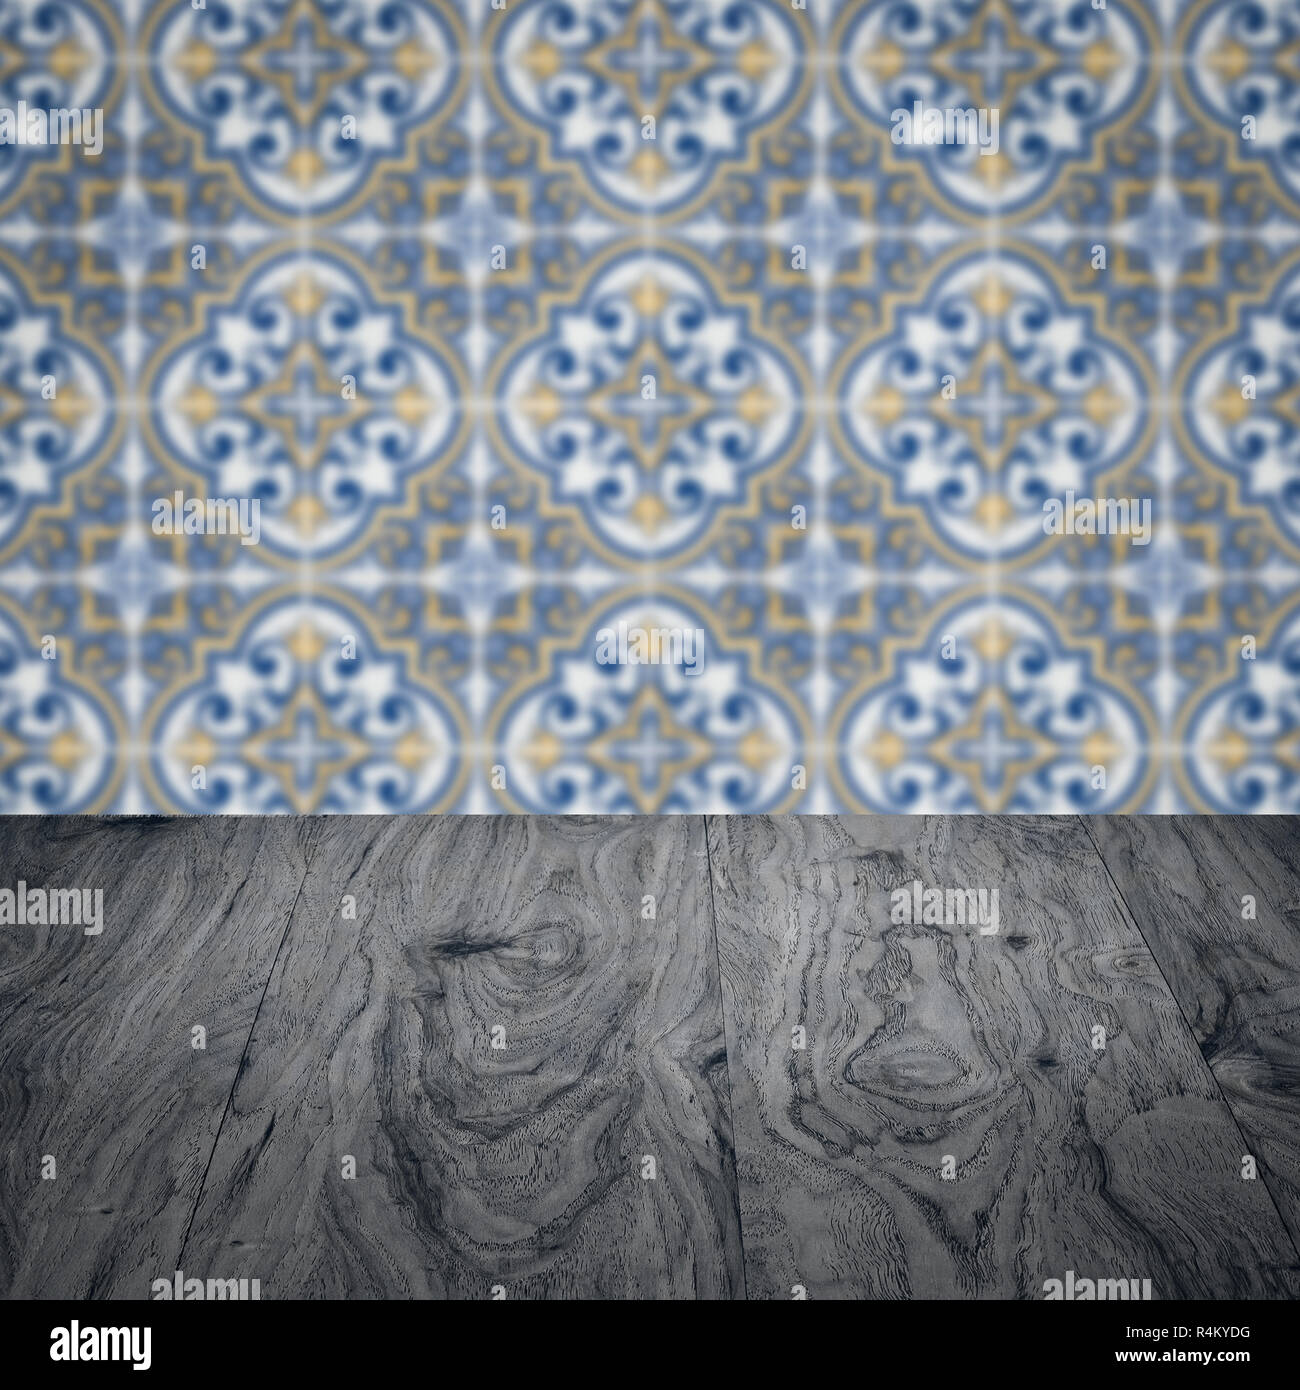 Empty Wood Table Top And Blur Vintage Ceramic Tile Pattern Wall In